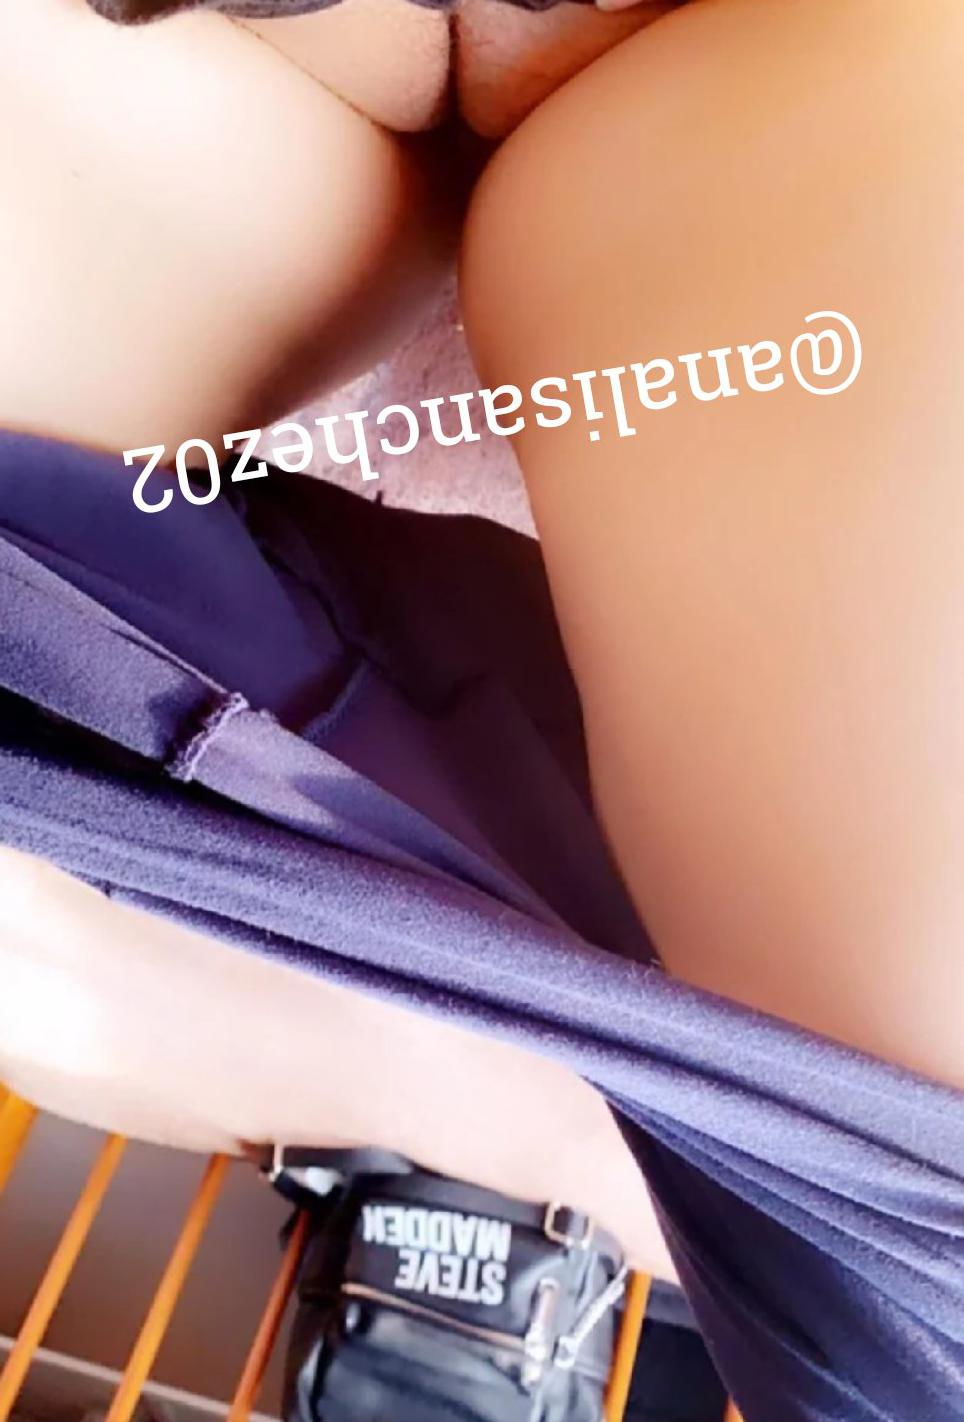 Anali Sanchez Nude Onlyfans Leaked!0007